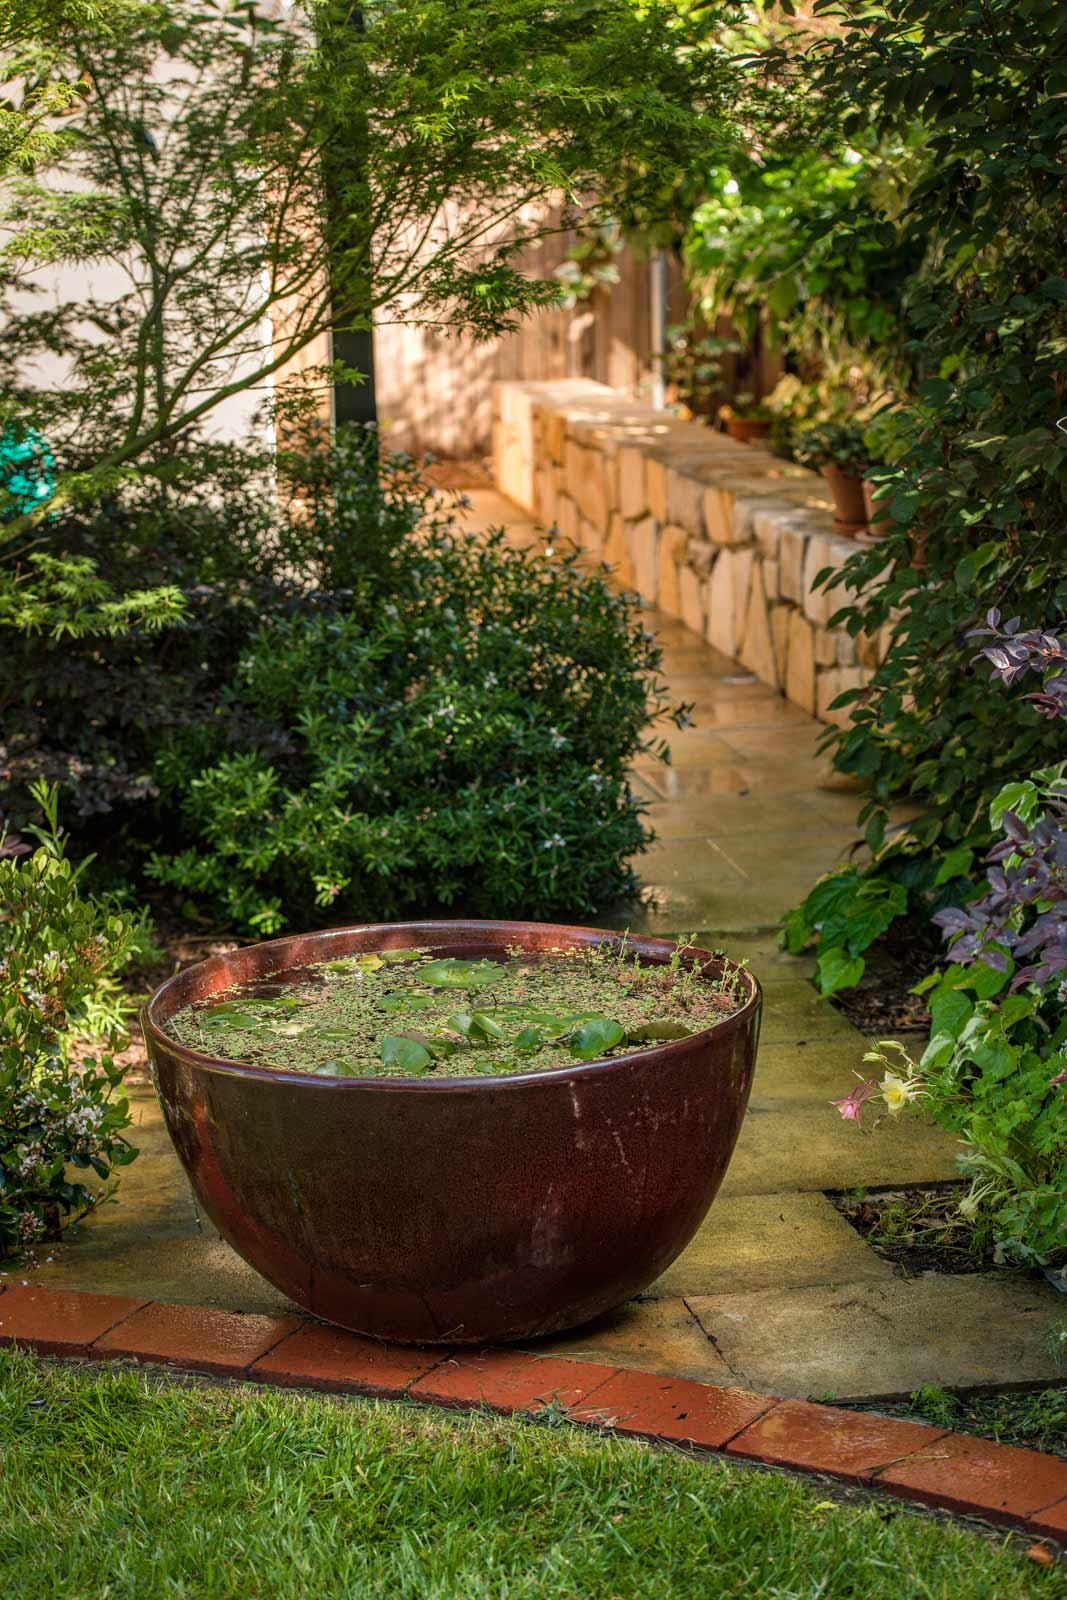 Shade garden sandstone wall, feature wall as seat, large water bowl with aquatics, natural materials, brick edging | Canberra Gardens